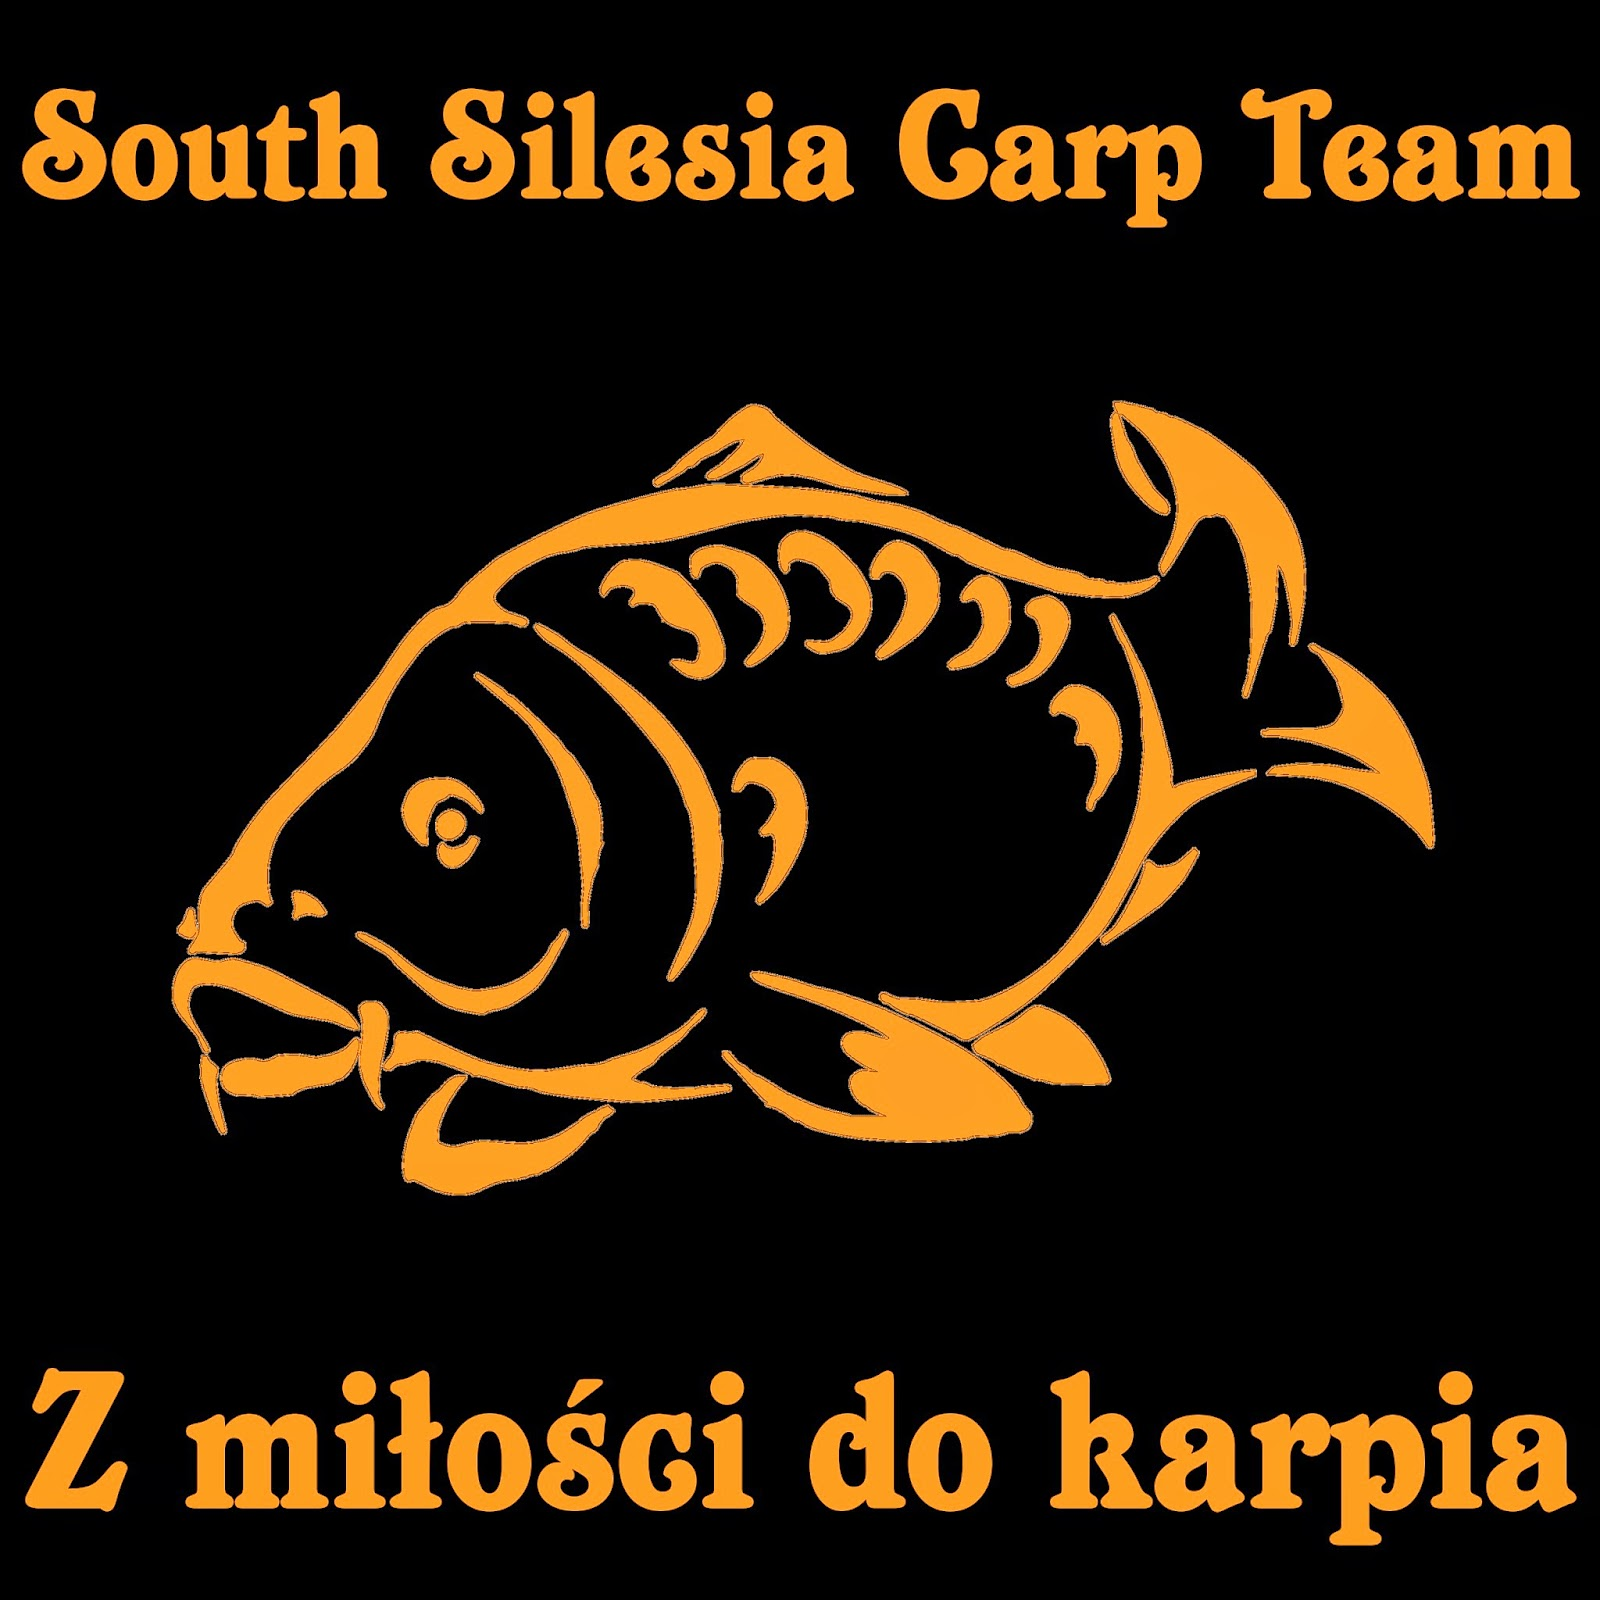 http://ssc-team.blogspot.com/